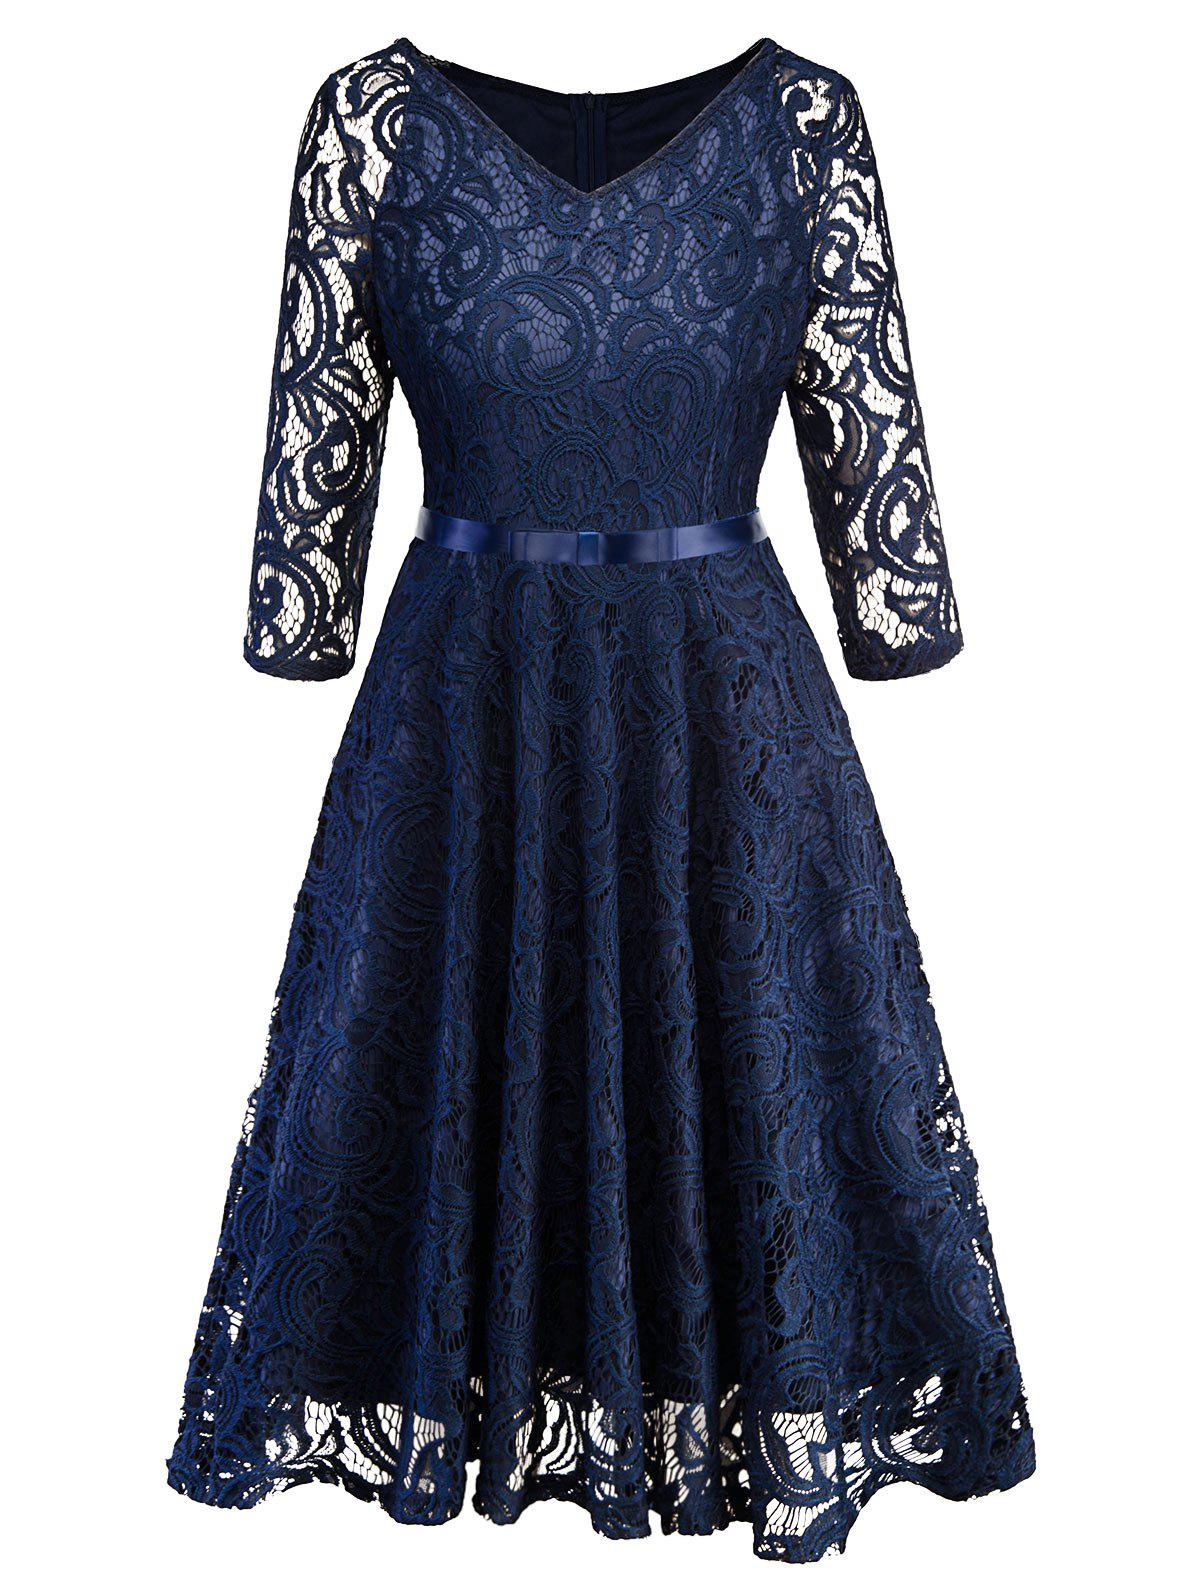 Retro Lace A Line Dress - DEEP BLUE S